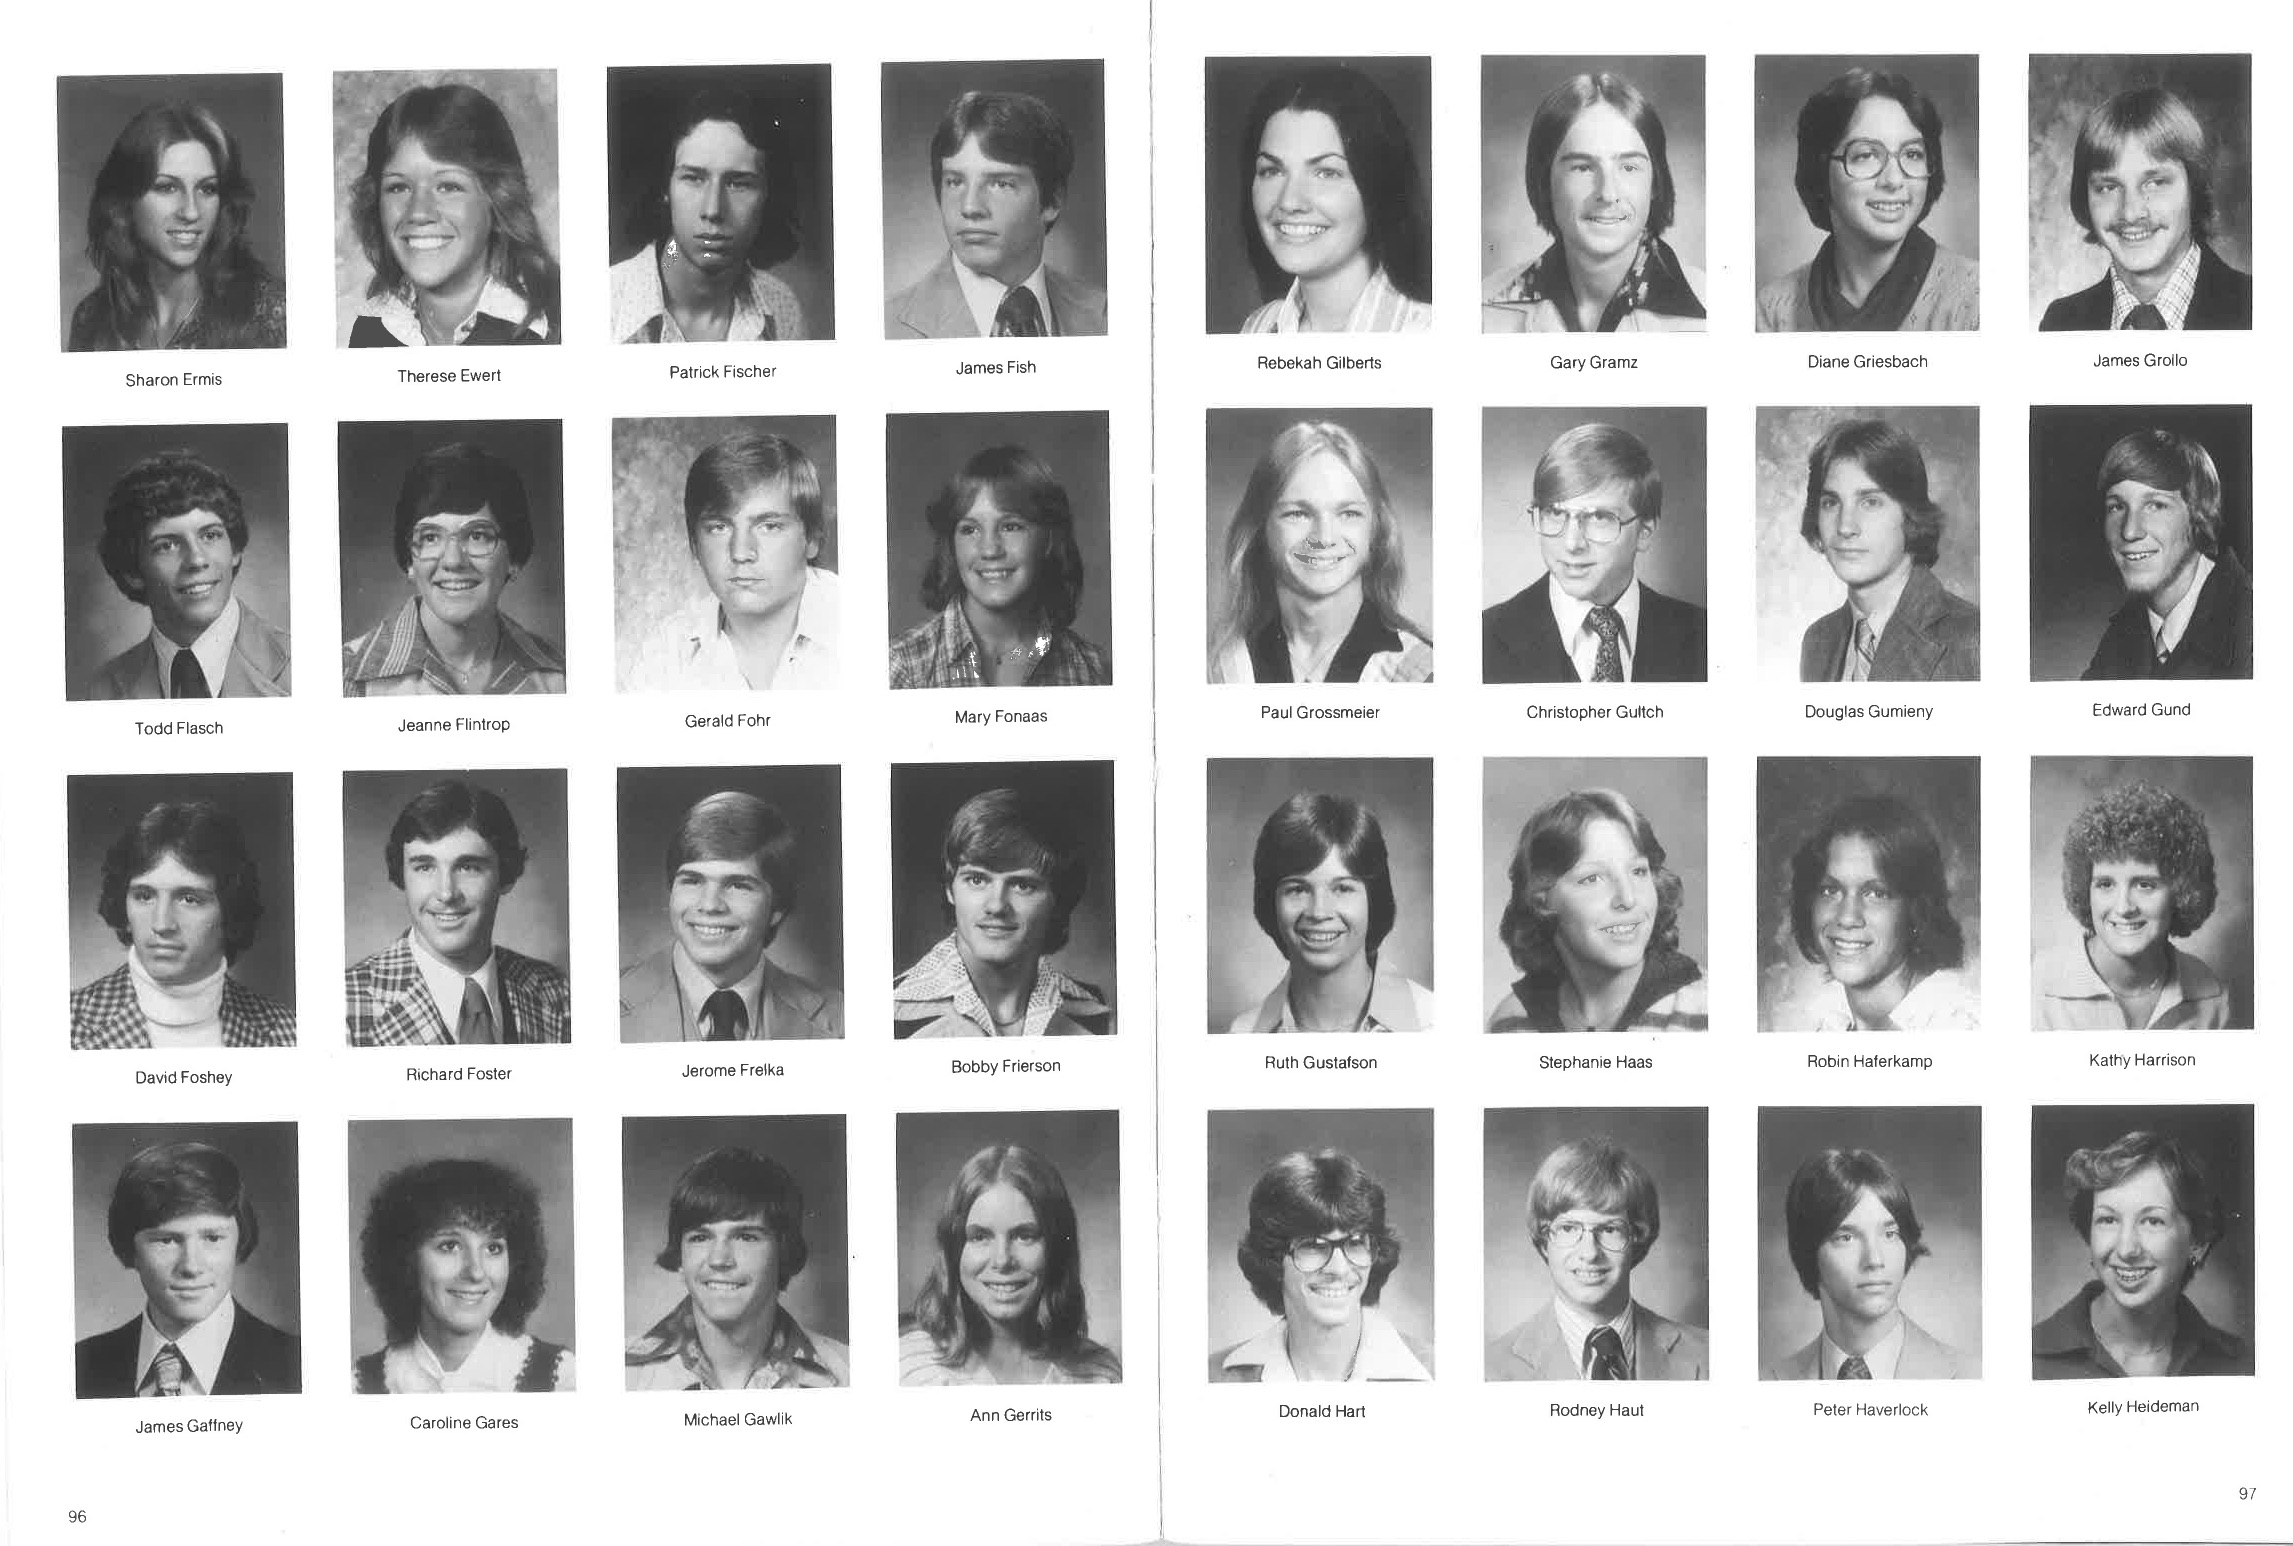 1979_Yearbook_96.jpg